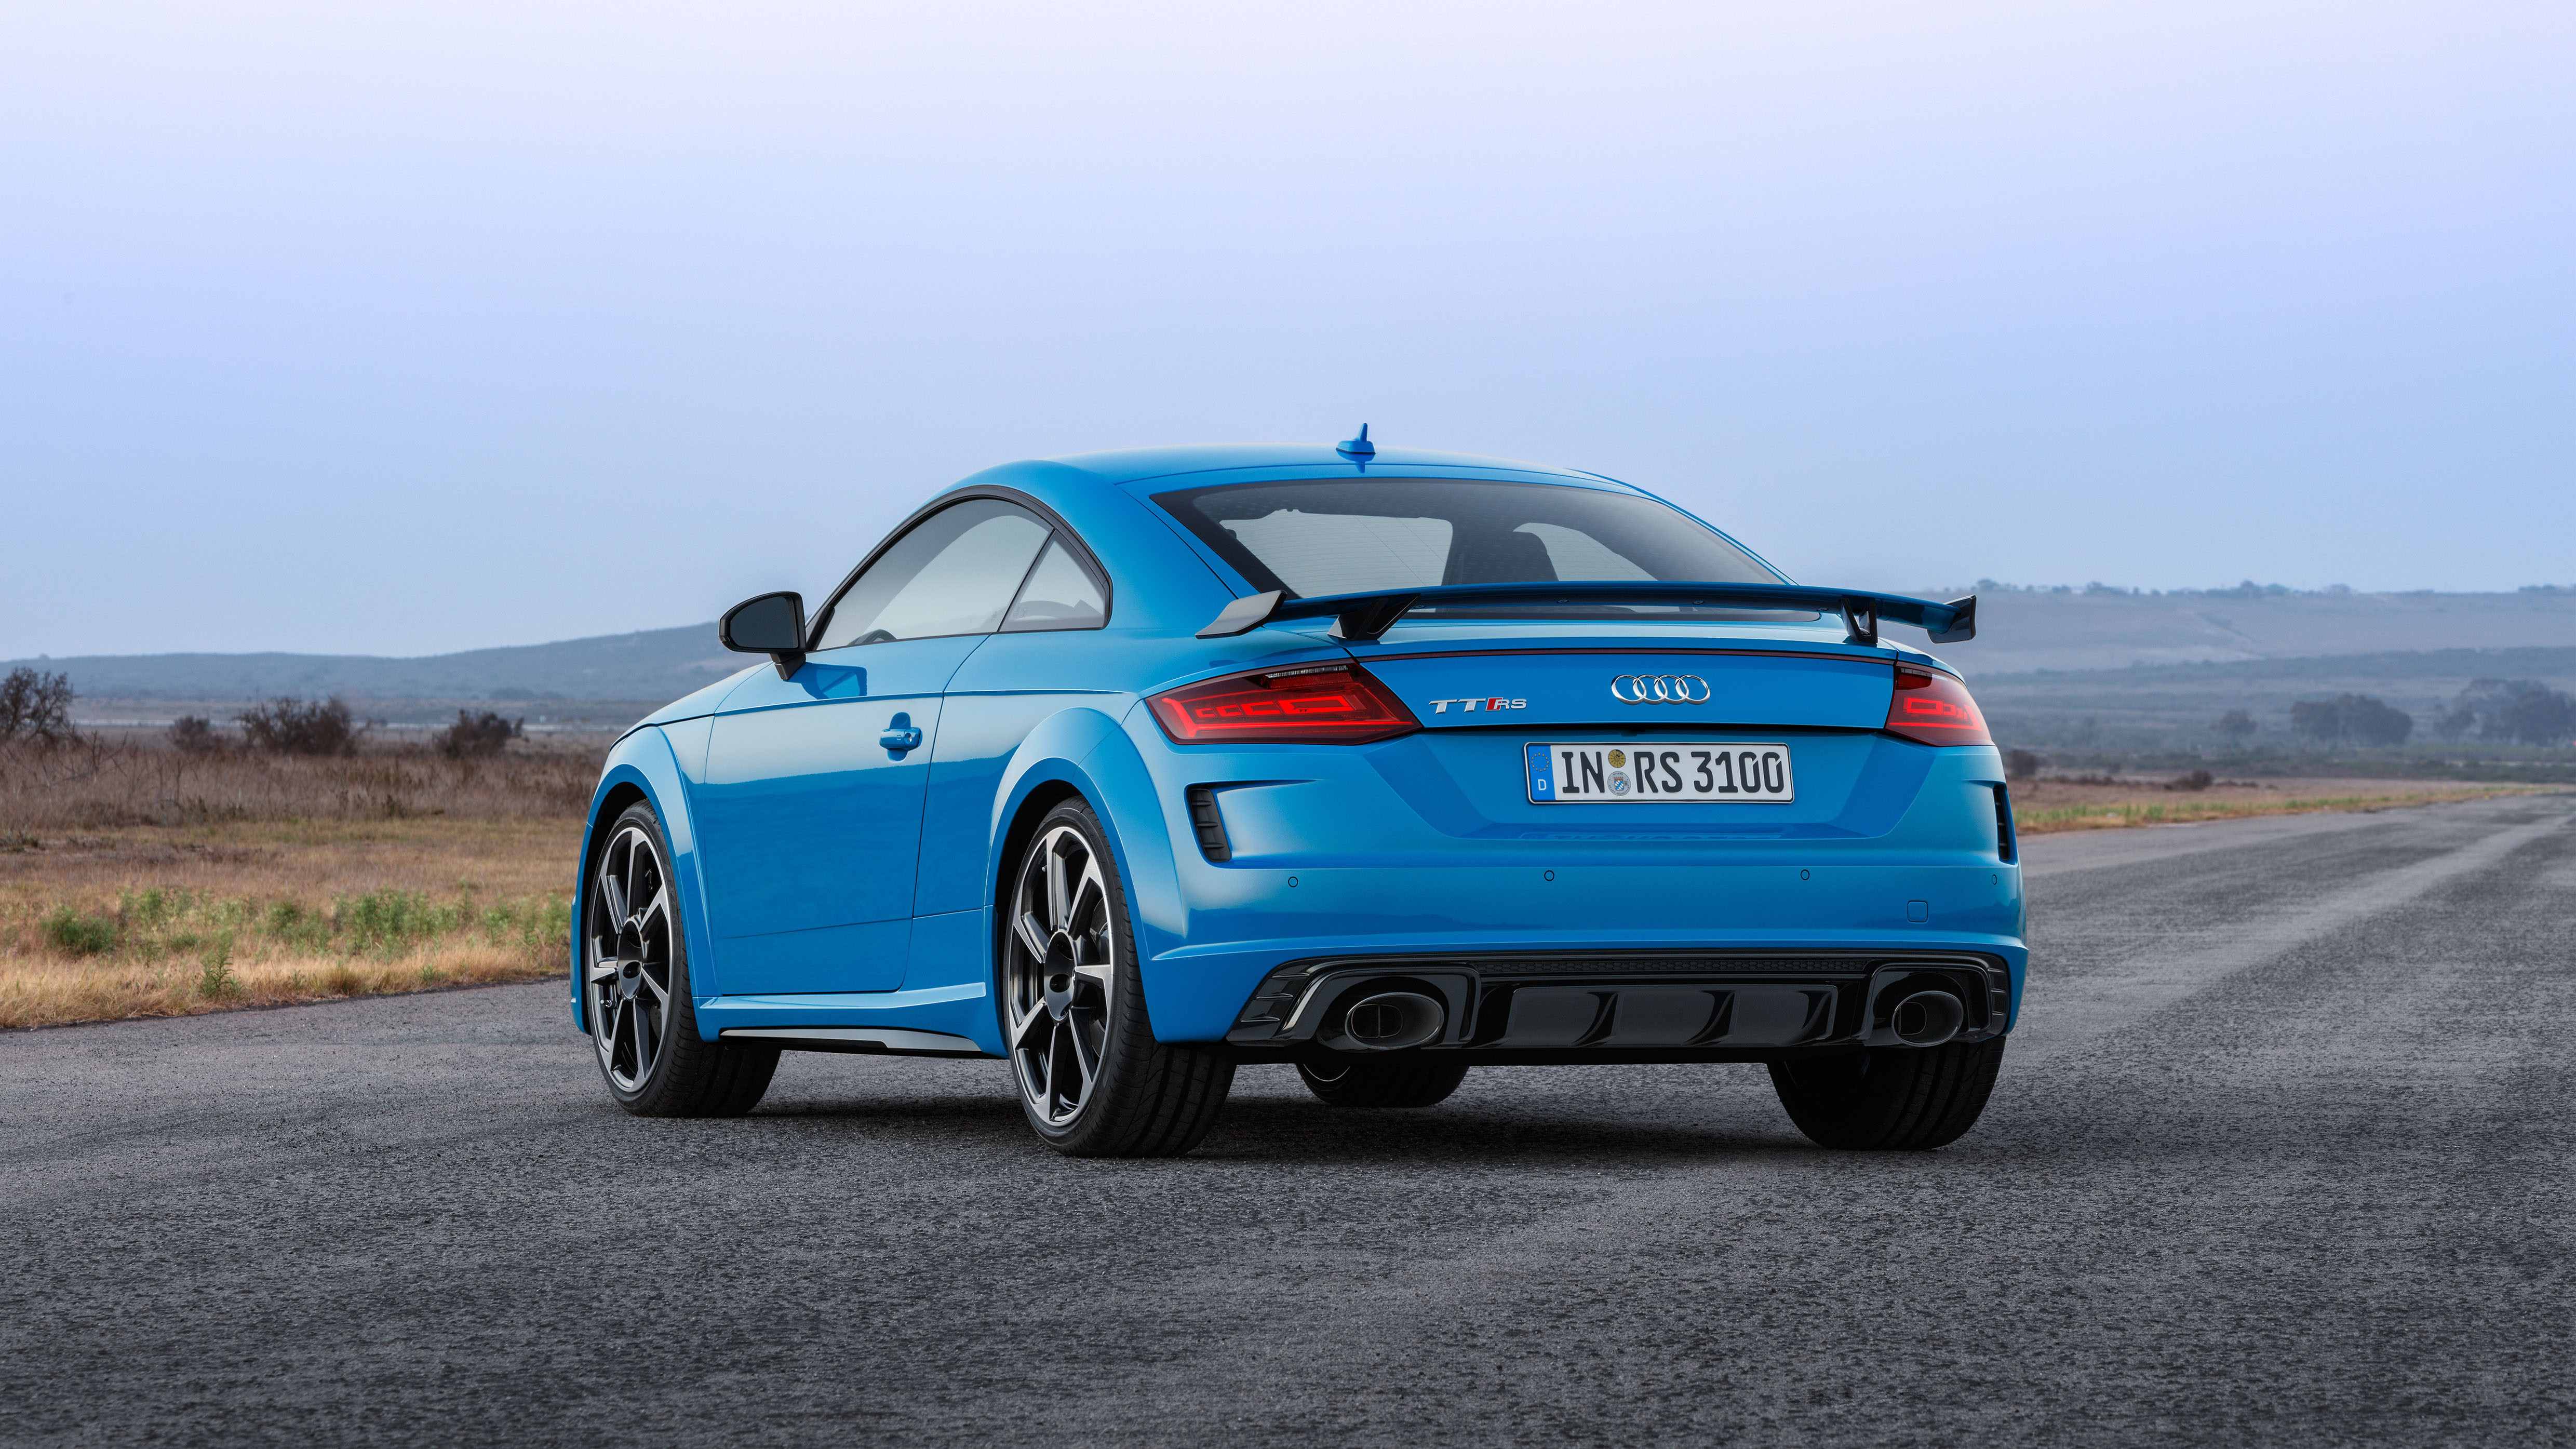 The Refreshed 2019 Audi TT RS Has Been Priced | Automobile ...